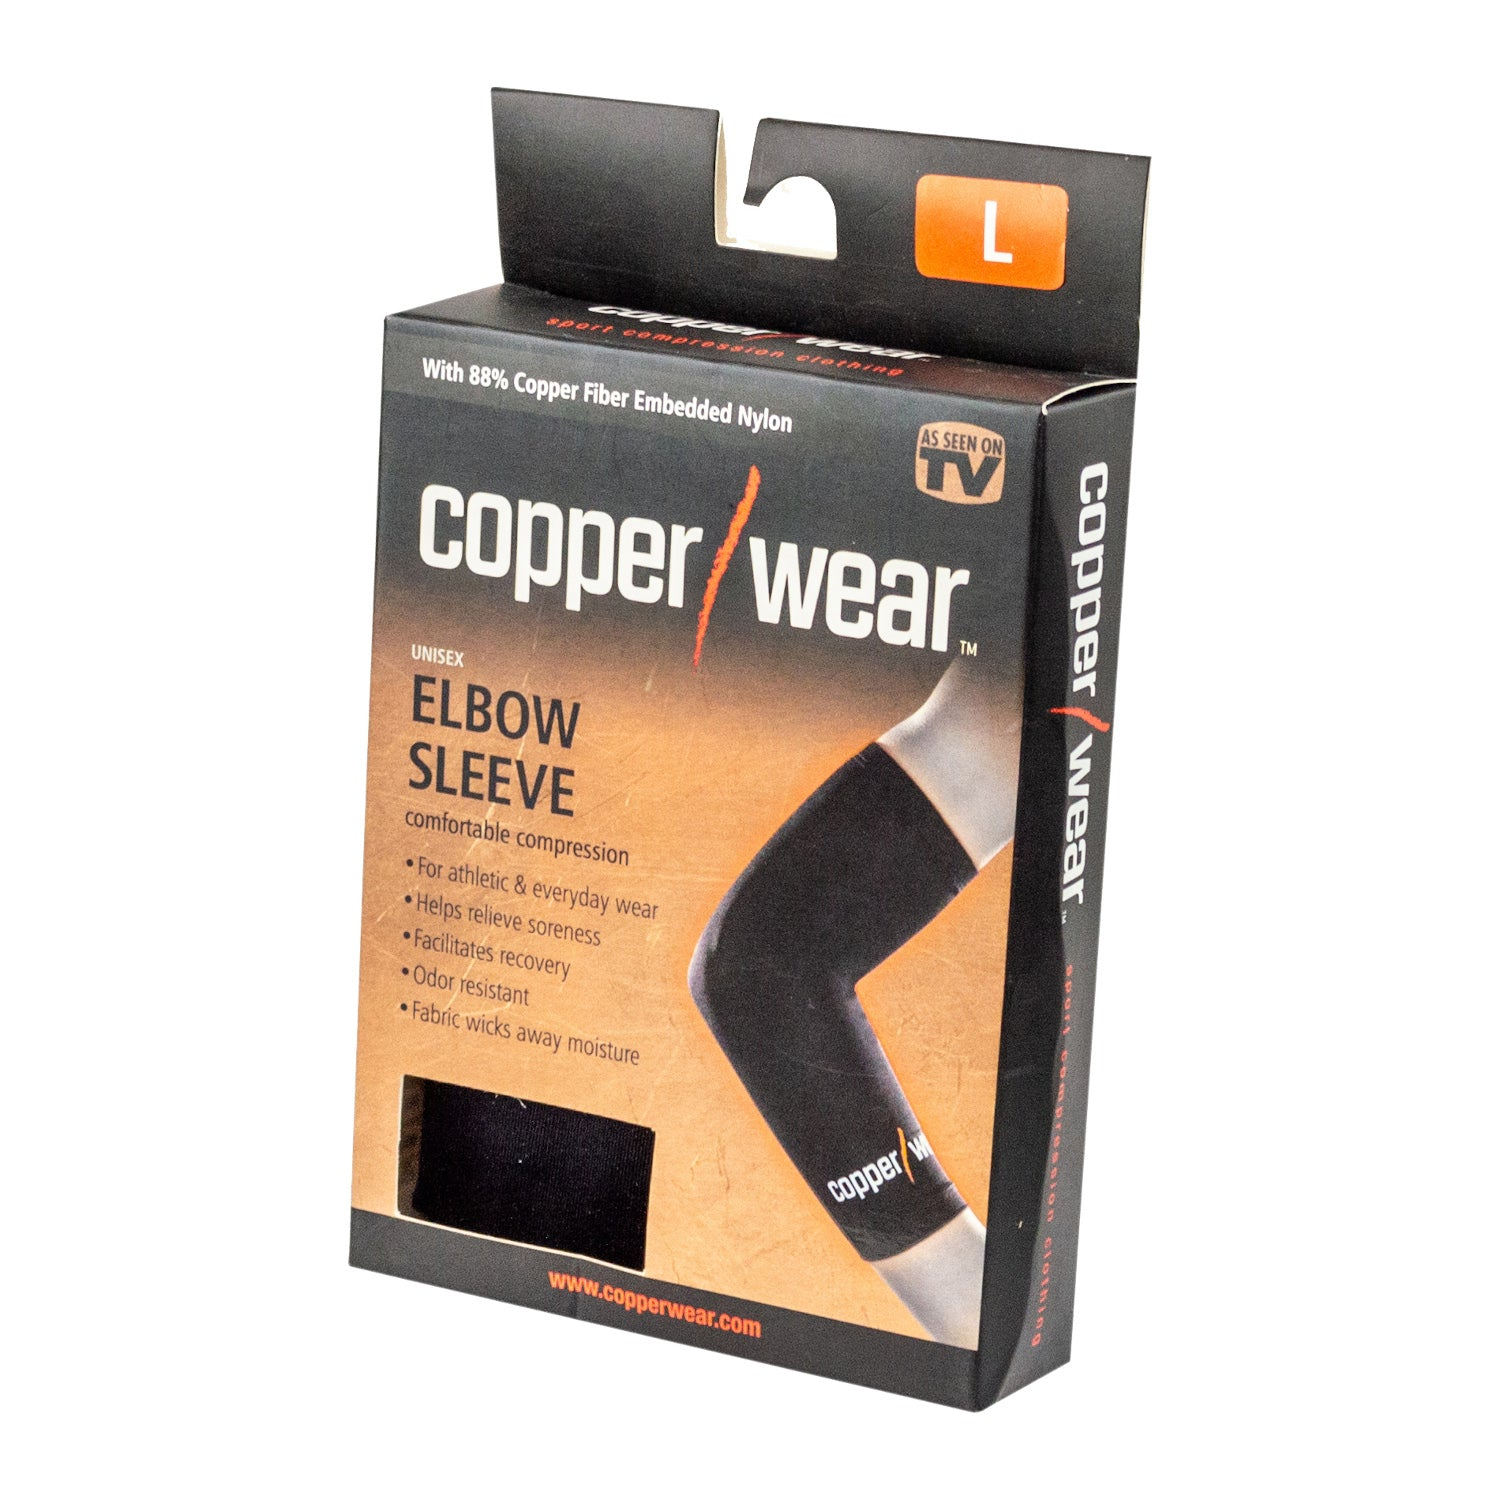 Image of As Seen On TV Copper Wear Unisex Elbow Sleeve, Large